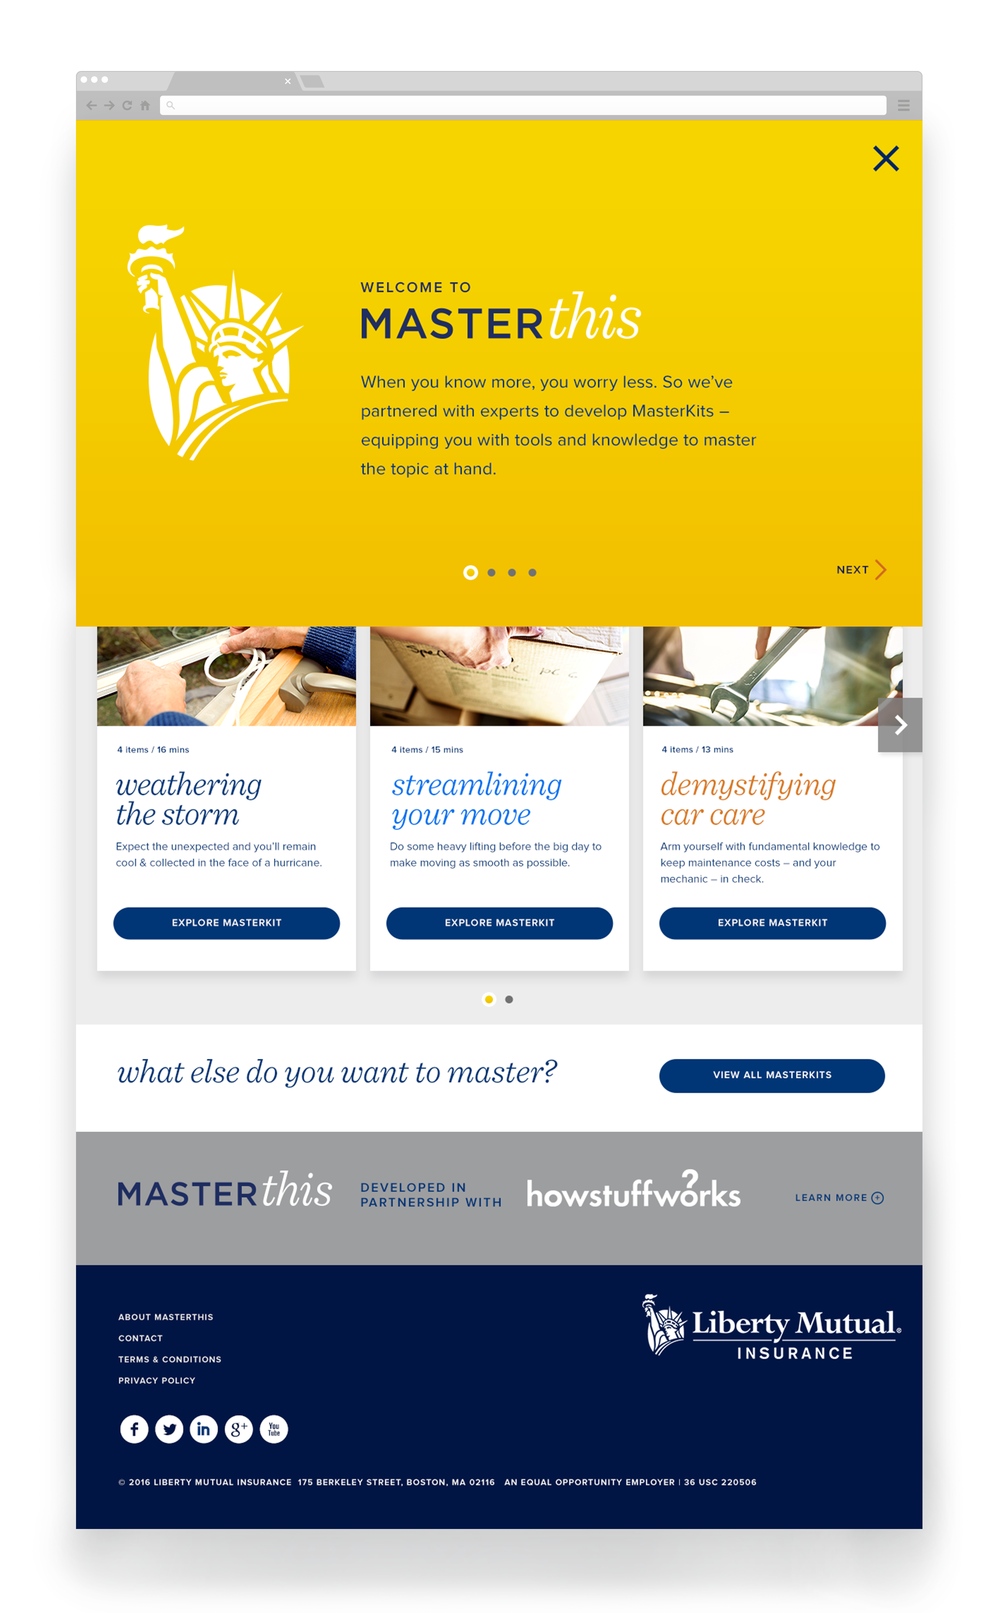 masterthis_mockup_browser_hp1.png